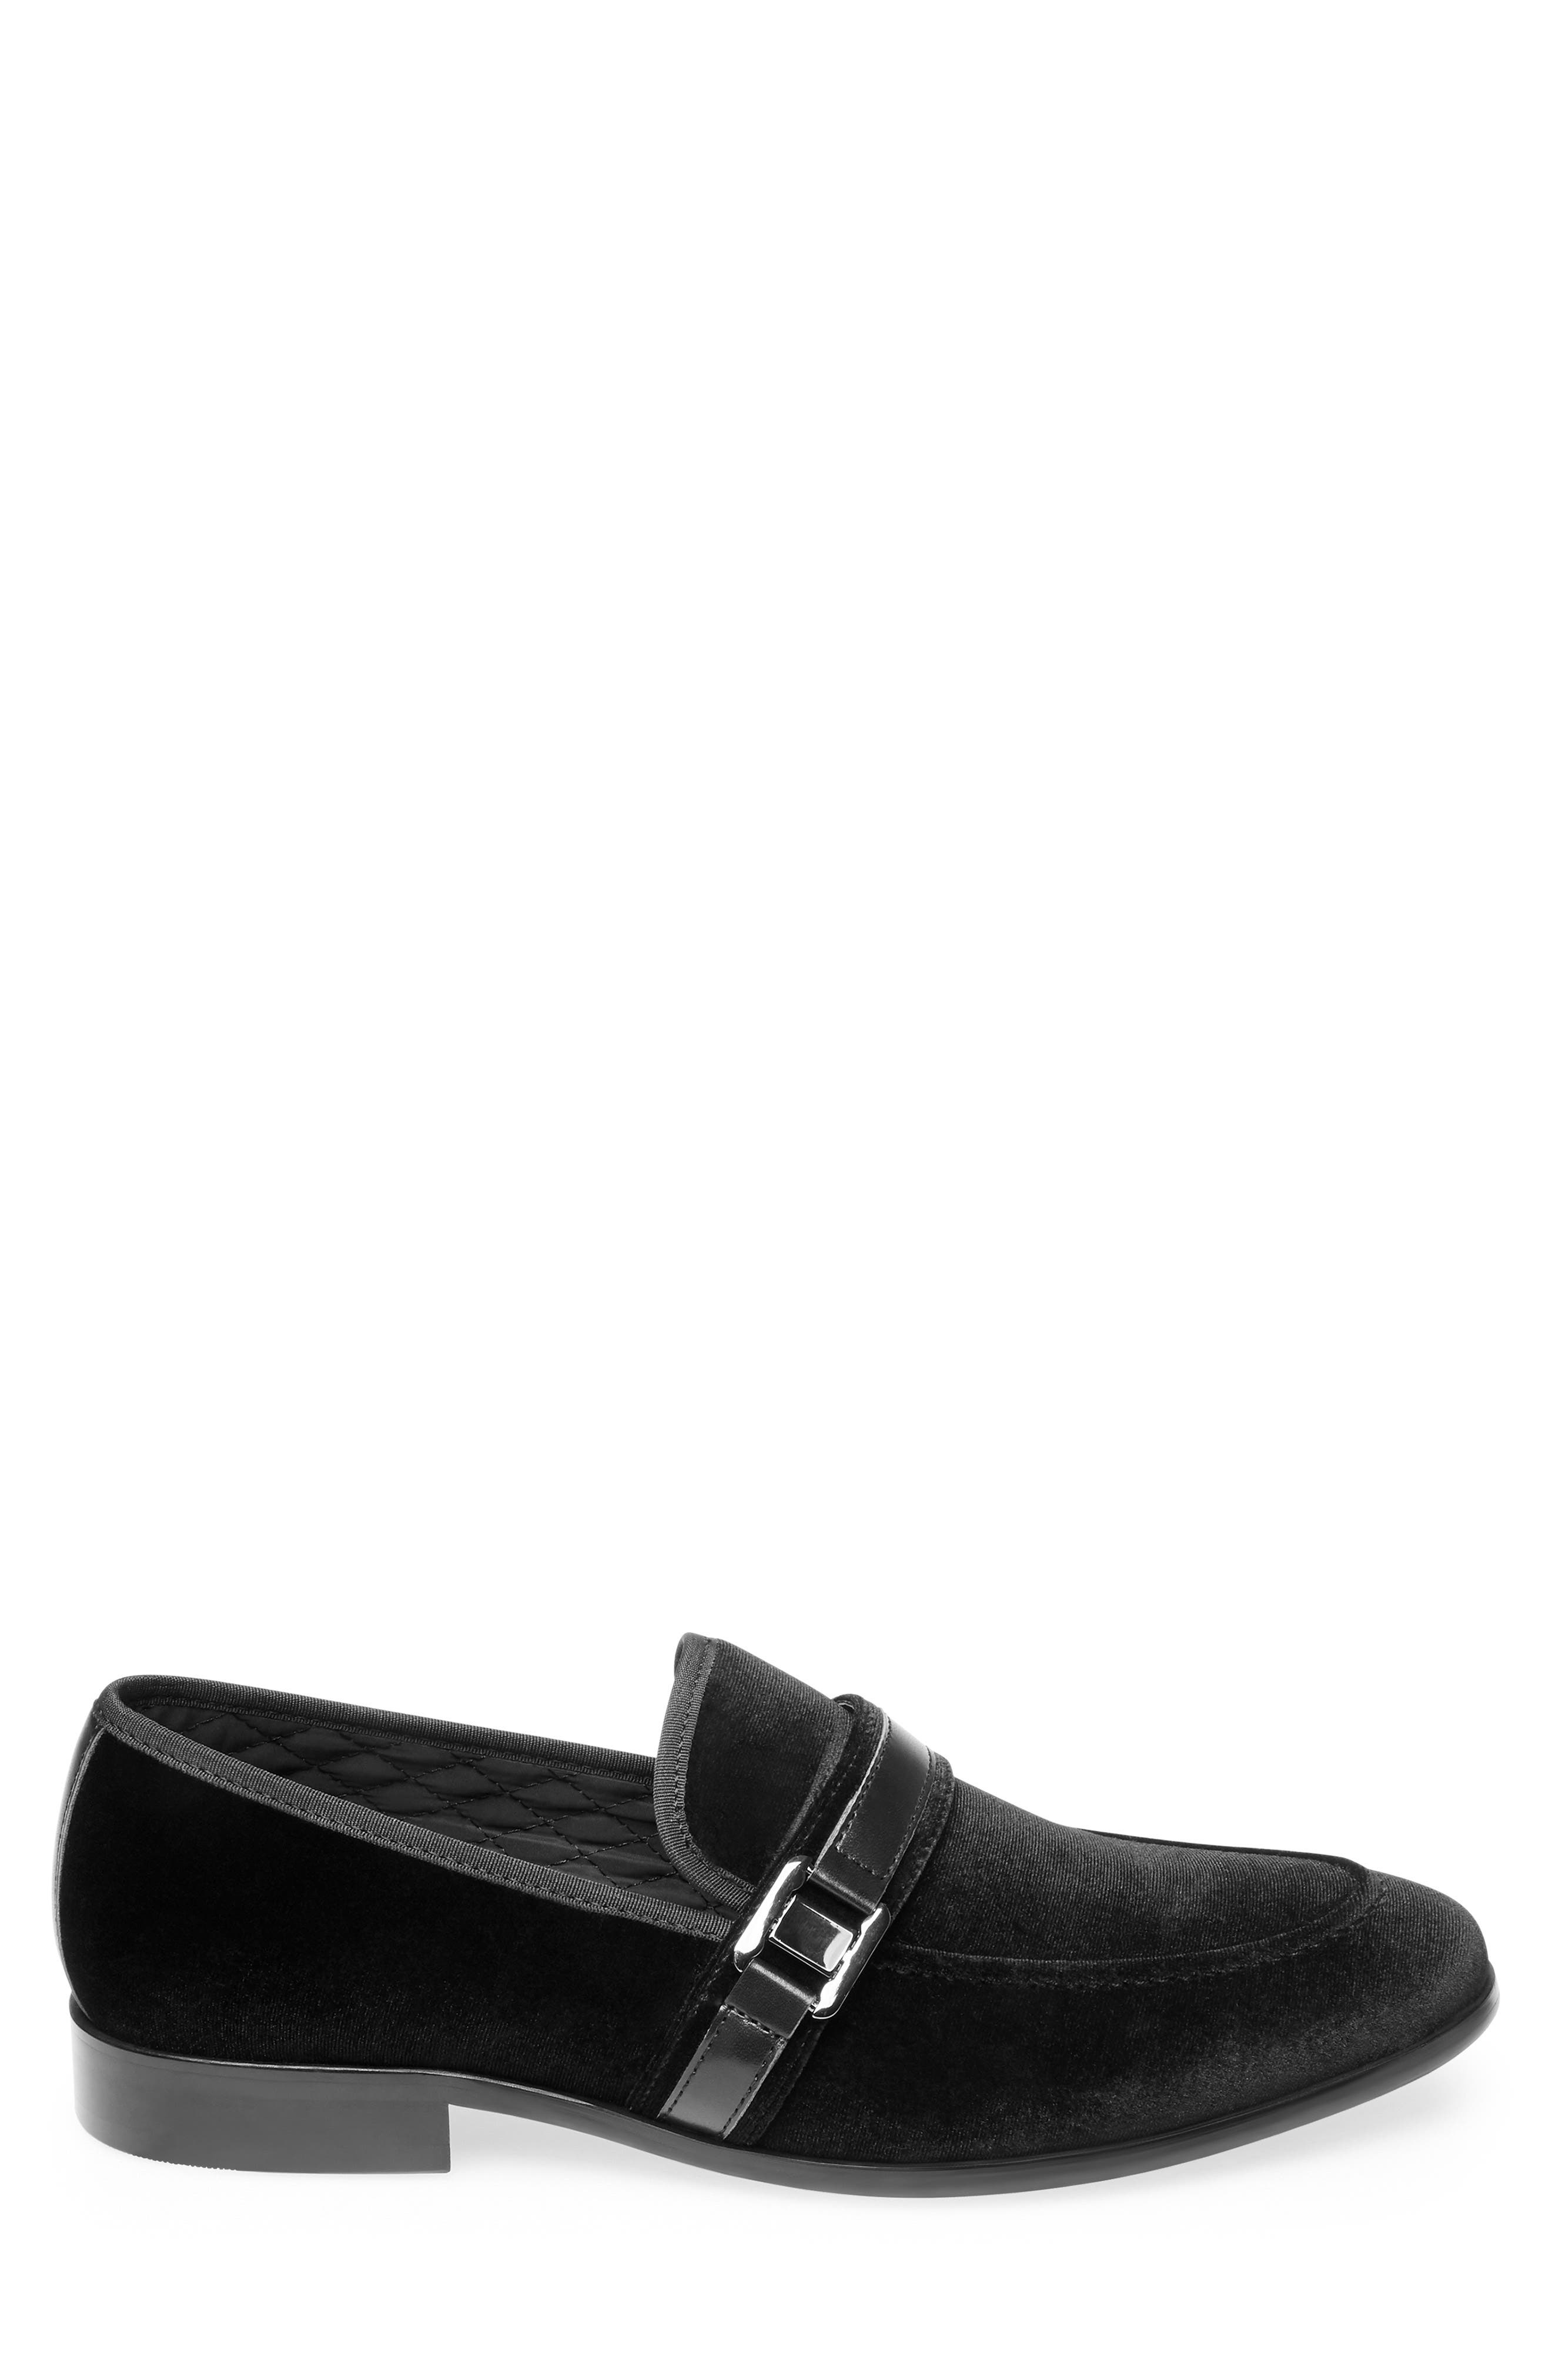 Macklin Bit Loafer,                             Alternate thumbnail 3, color,                             BLACK FABRIC